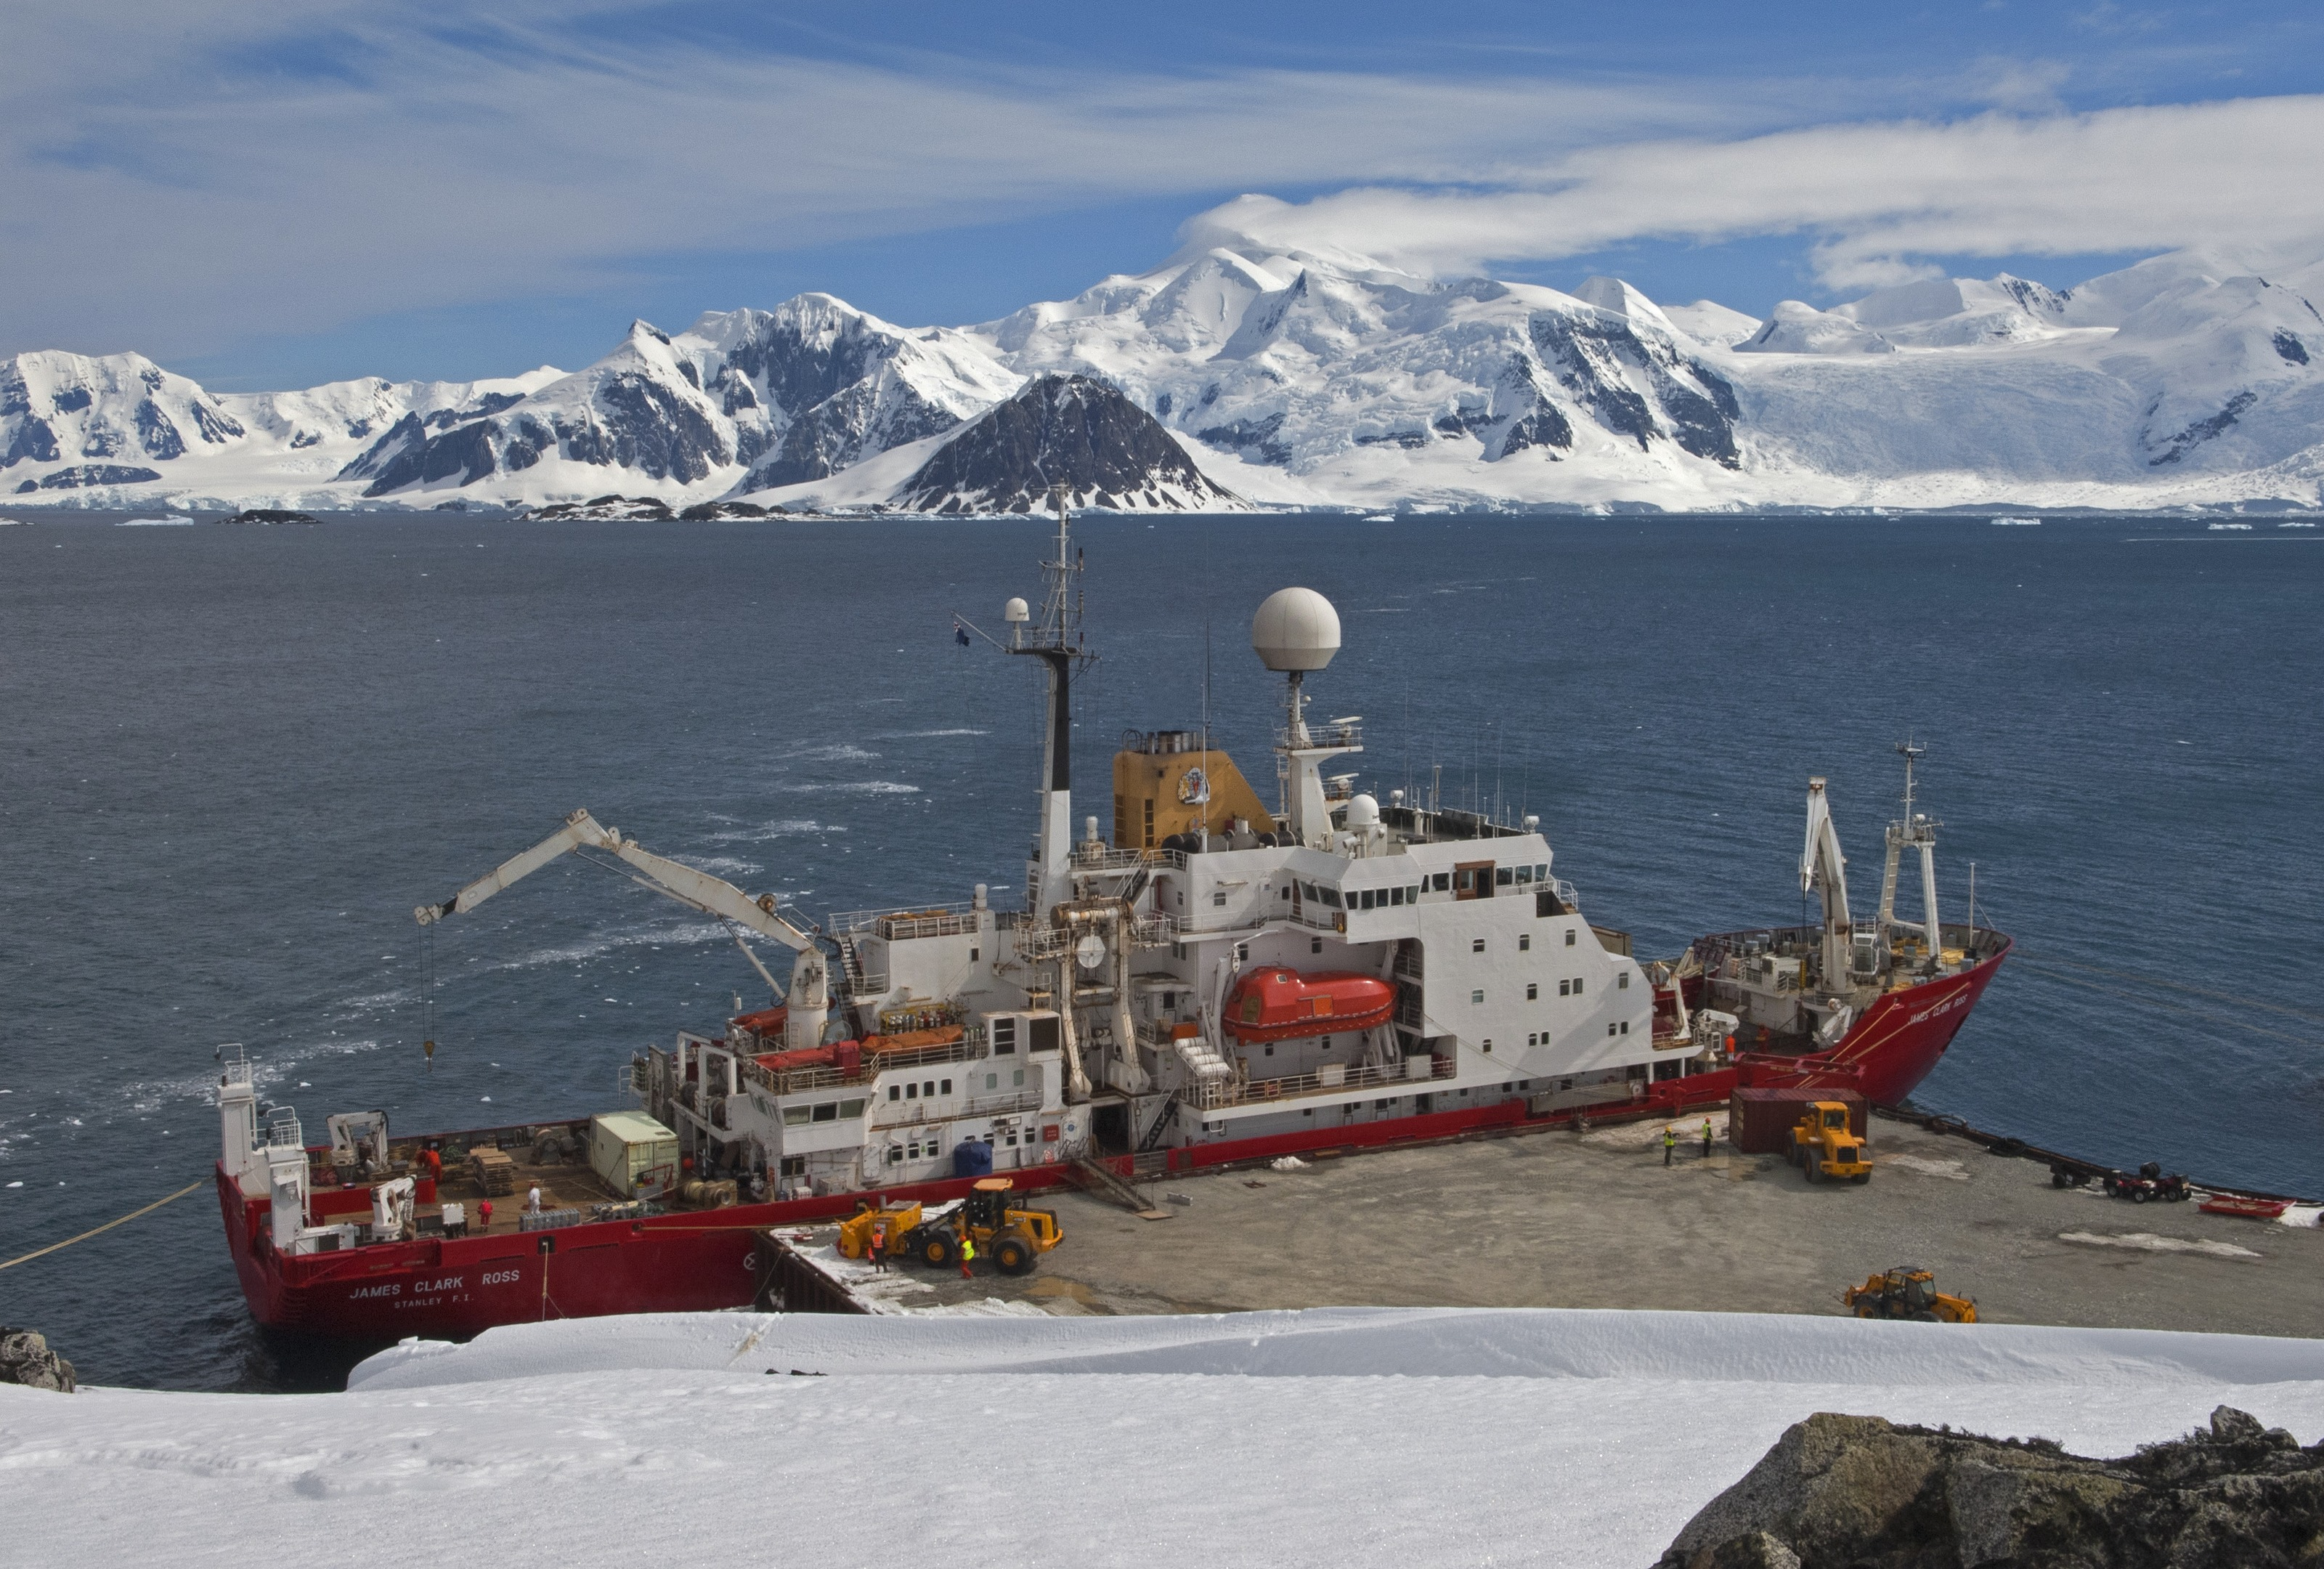 Temperatures at Rothera can drop to -20C in the winter months